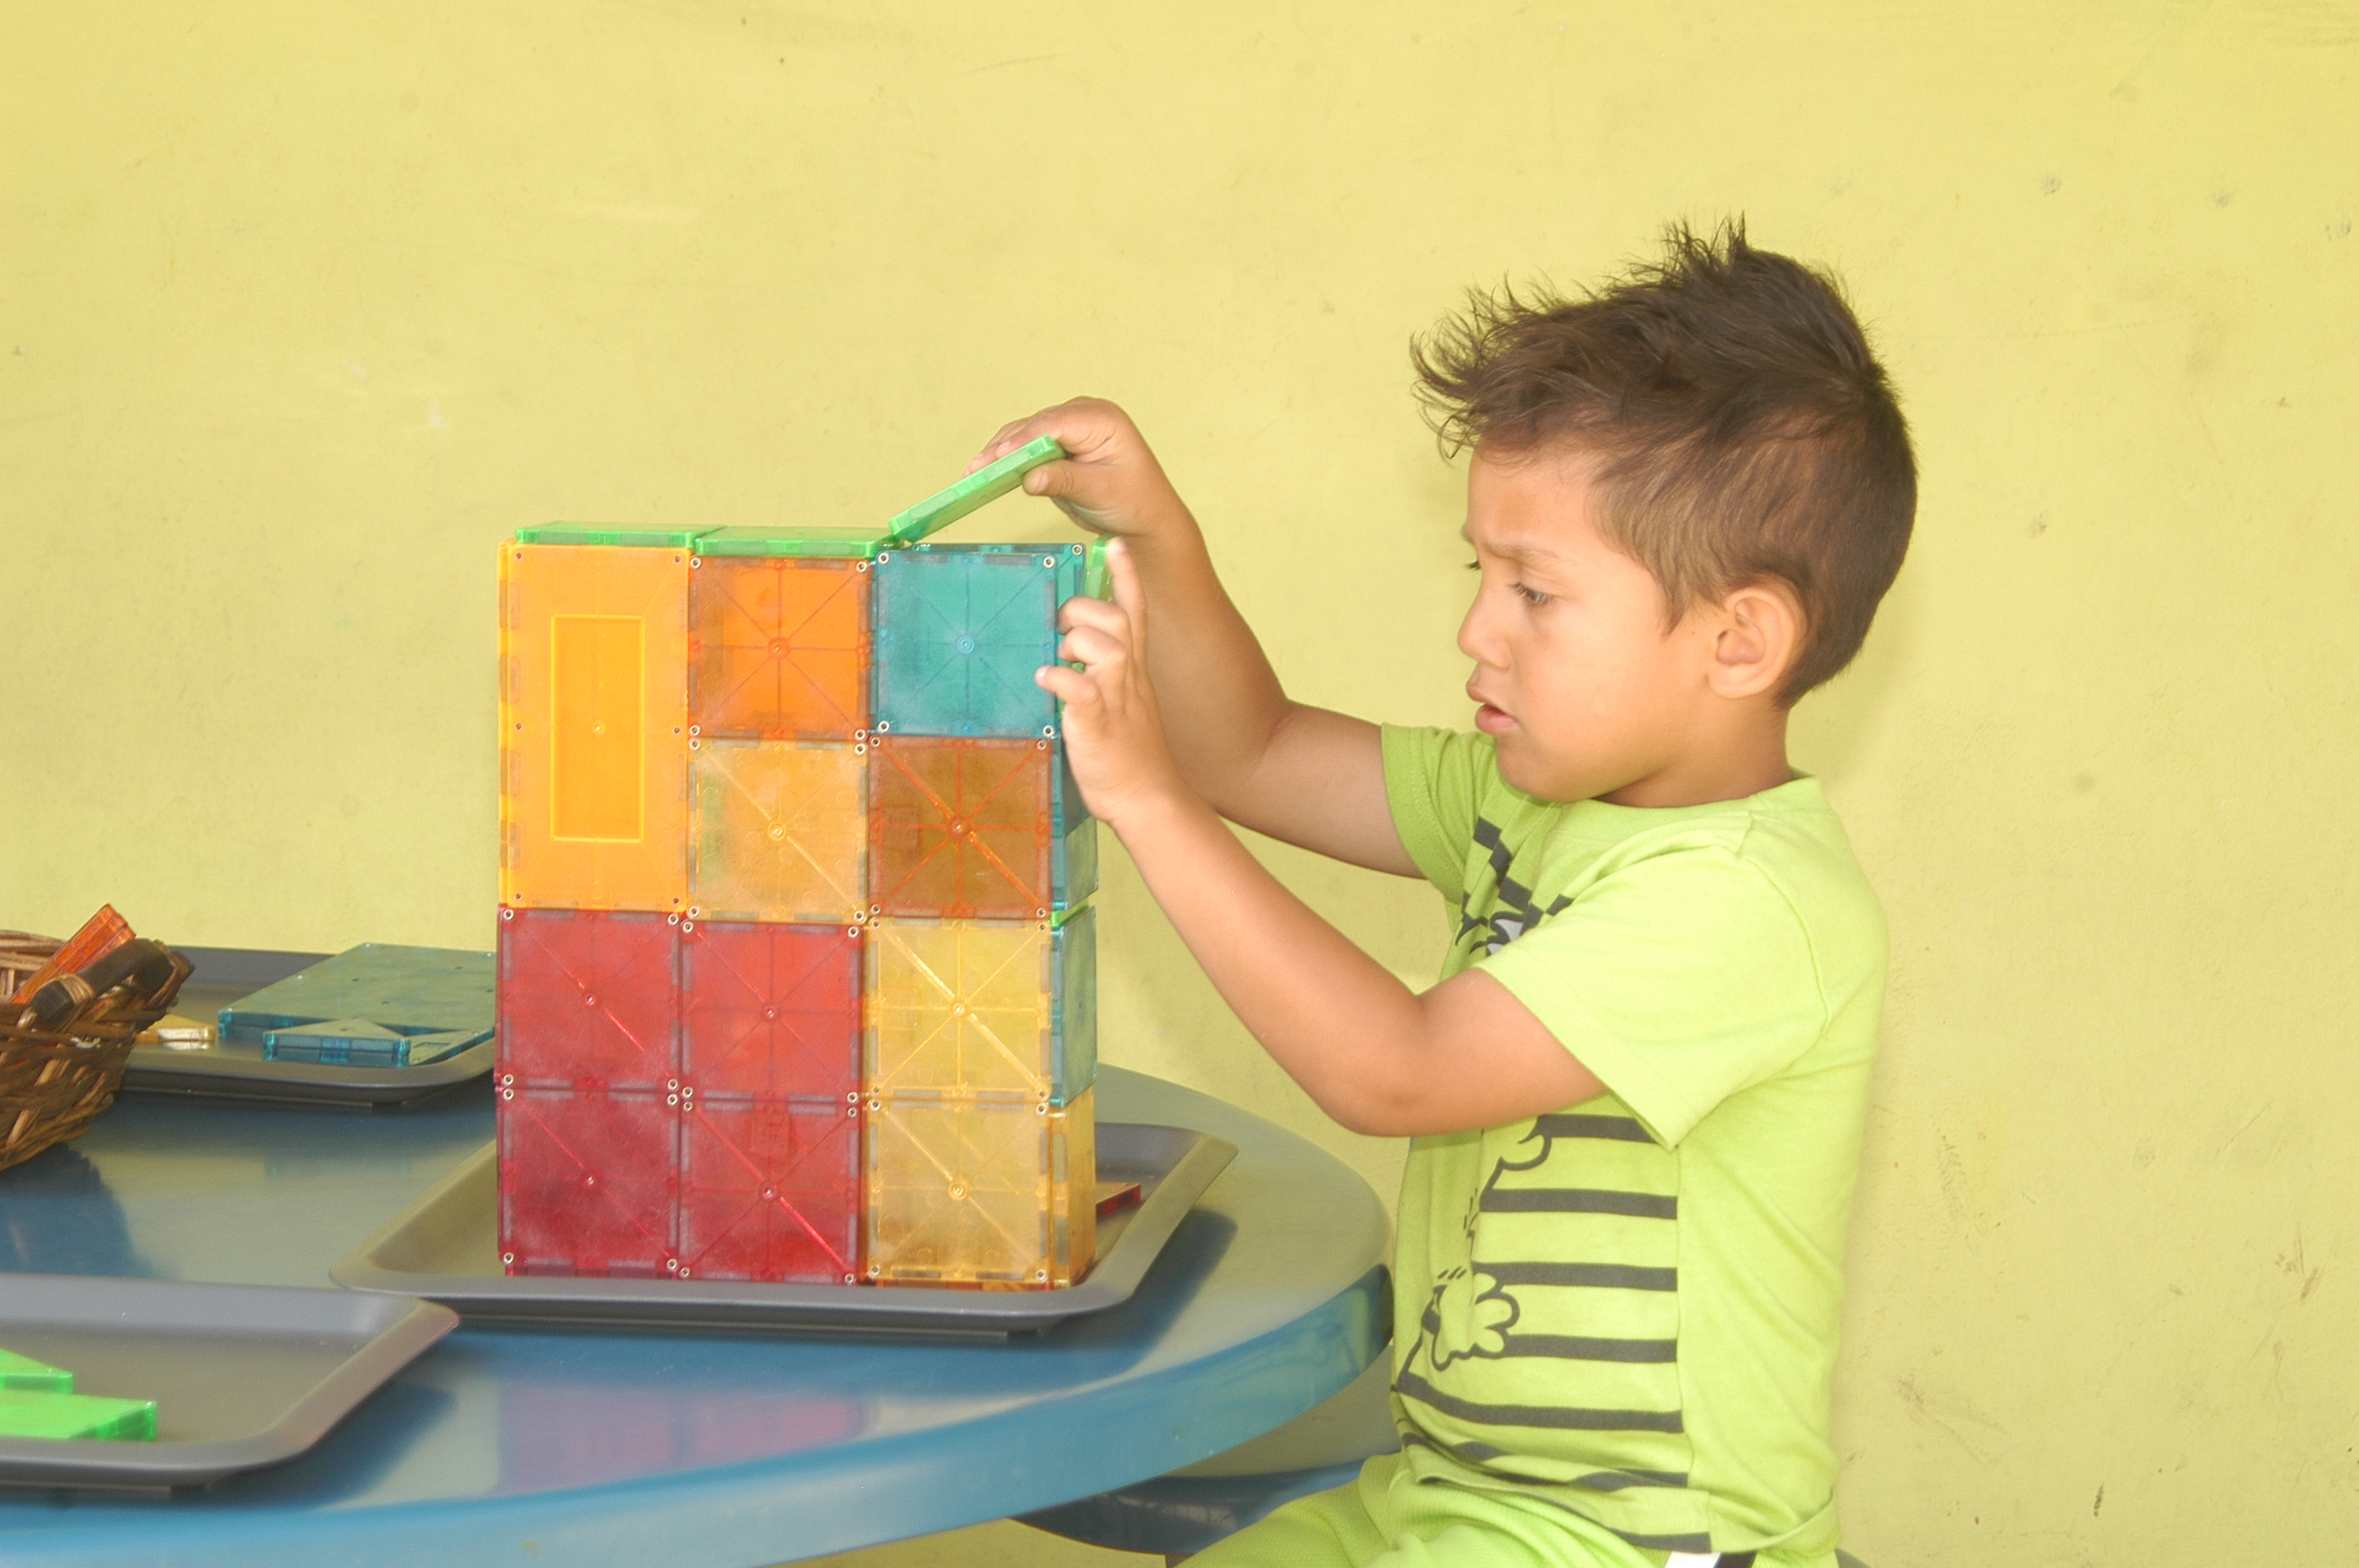 Children's Center - Child Playing with Blocks